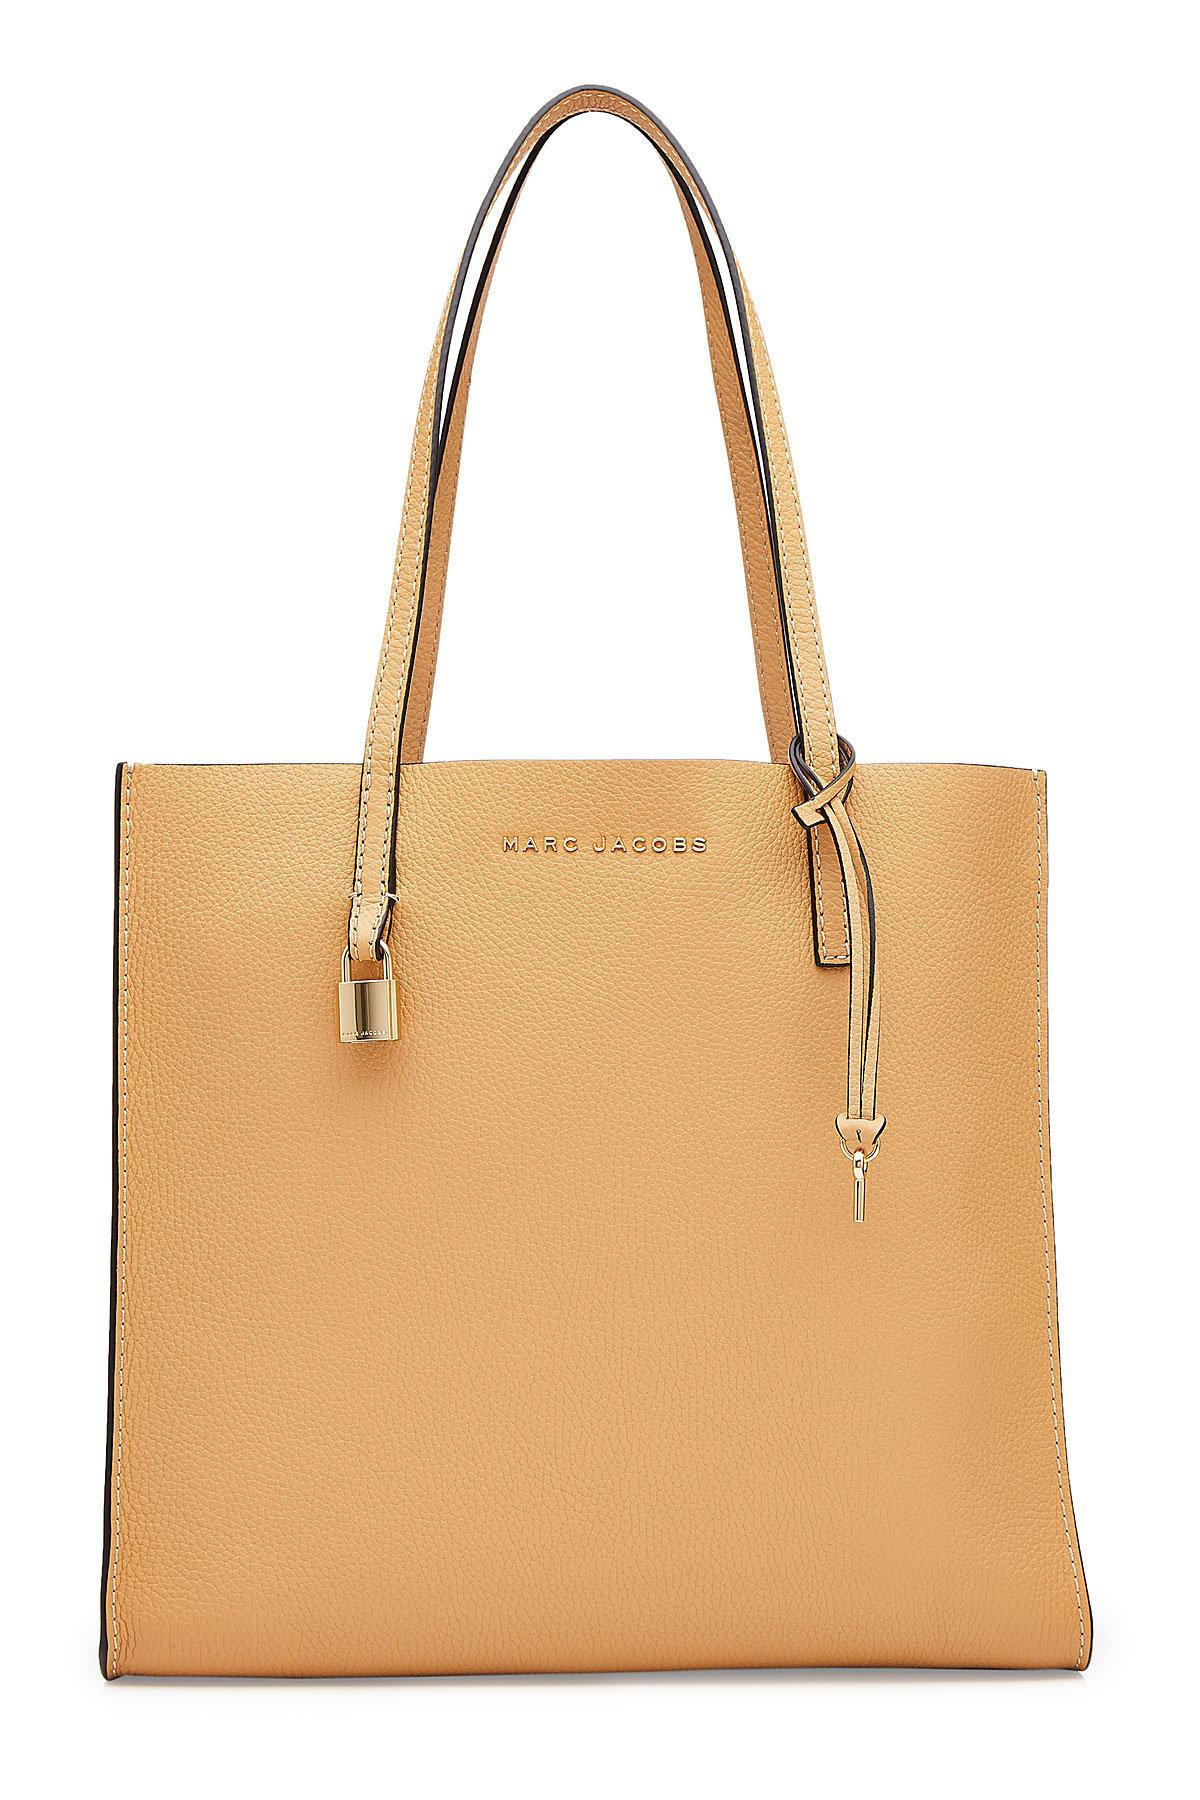 Marc Jacobs Leather Tote In Beige